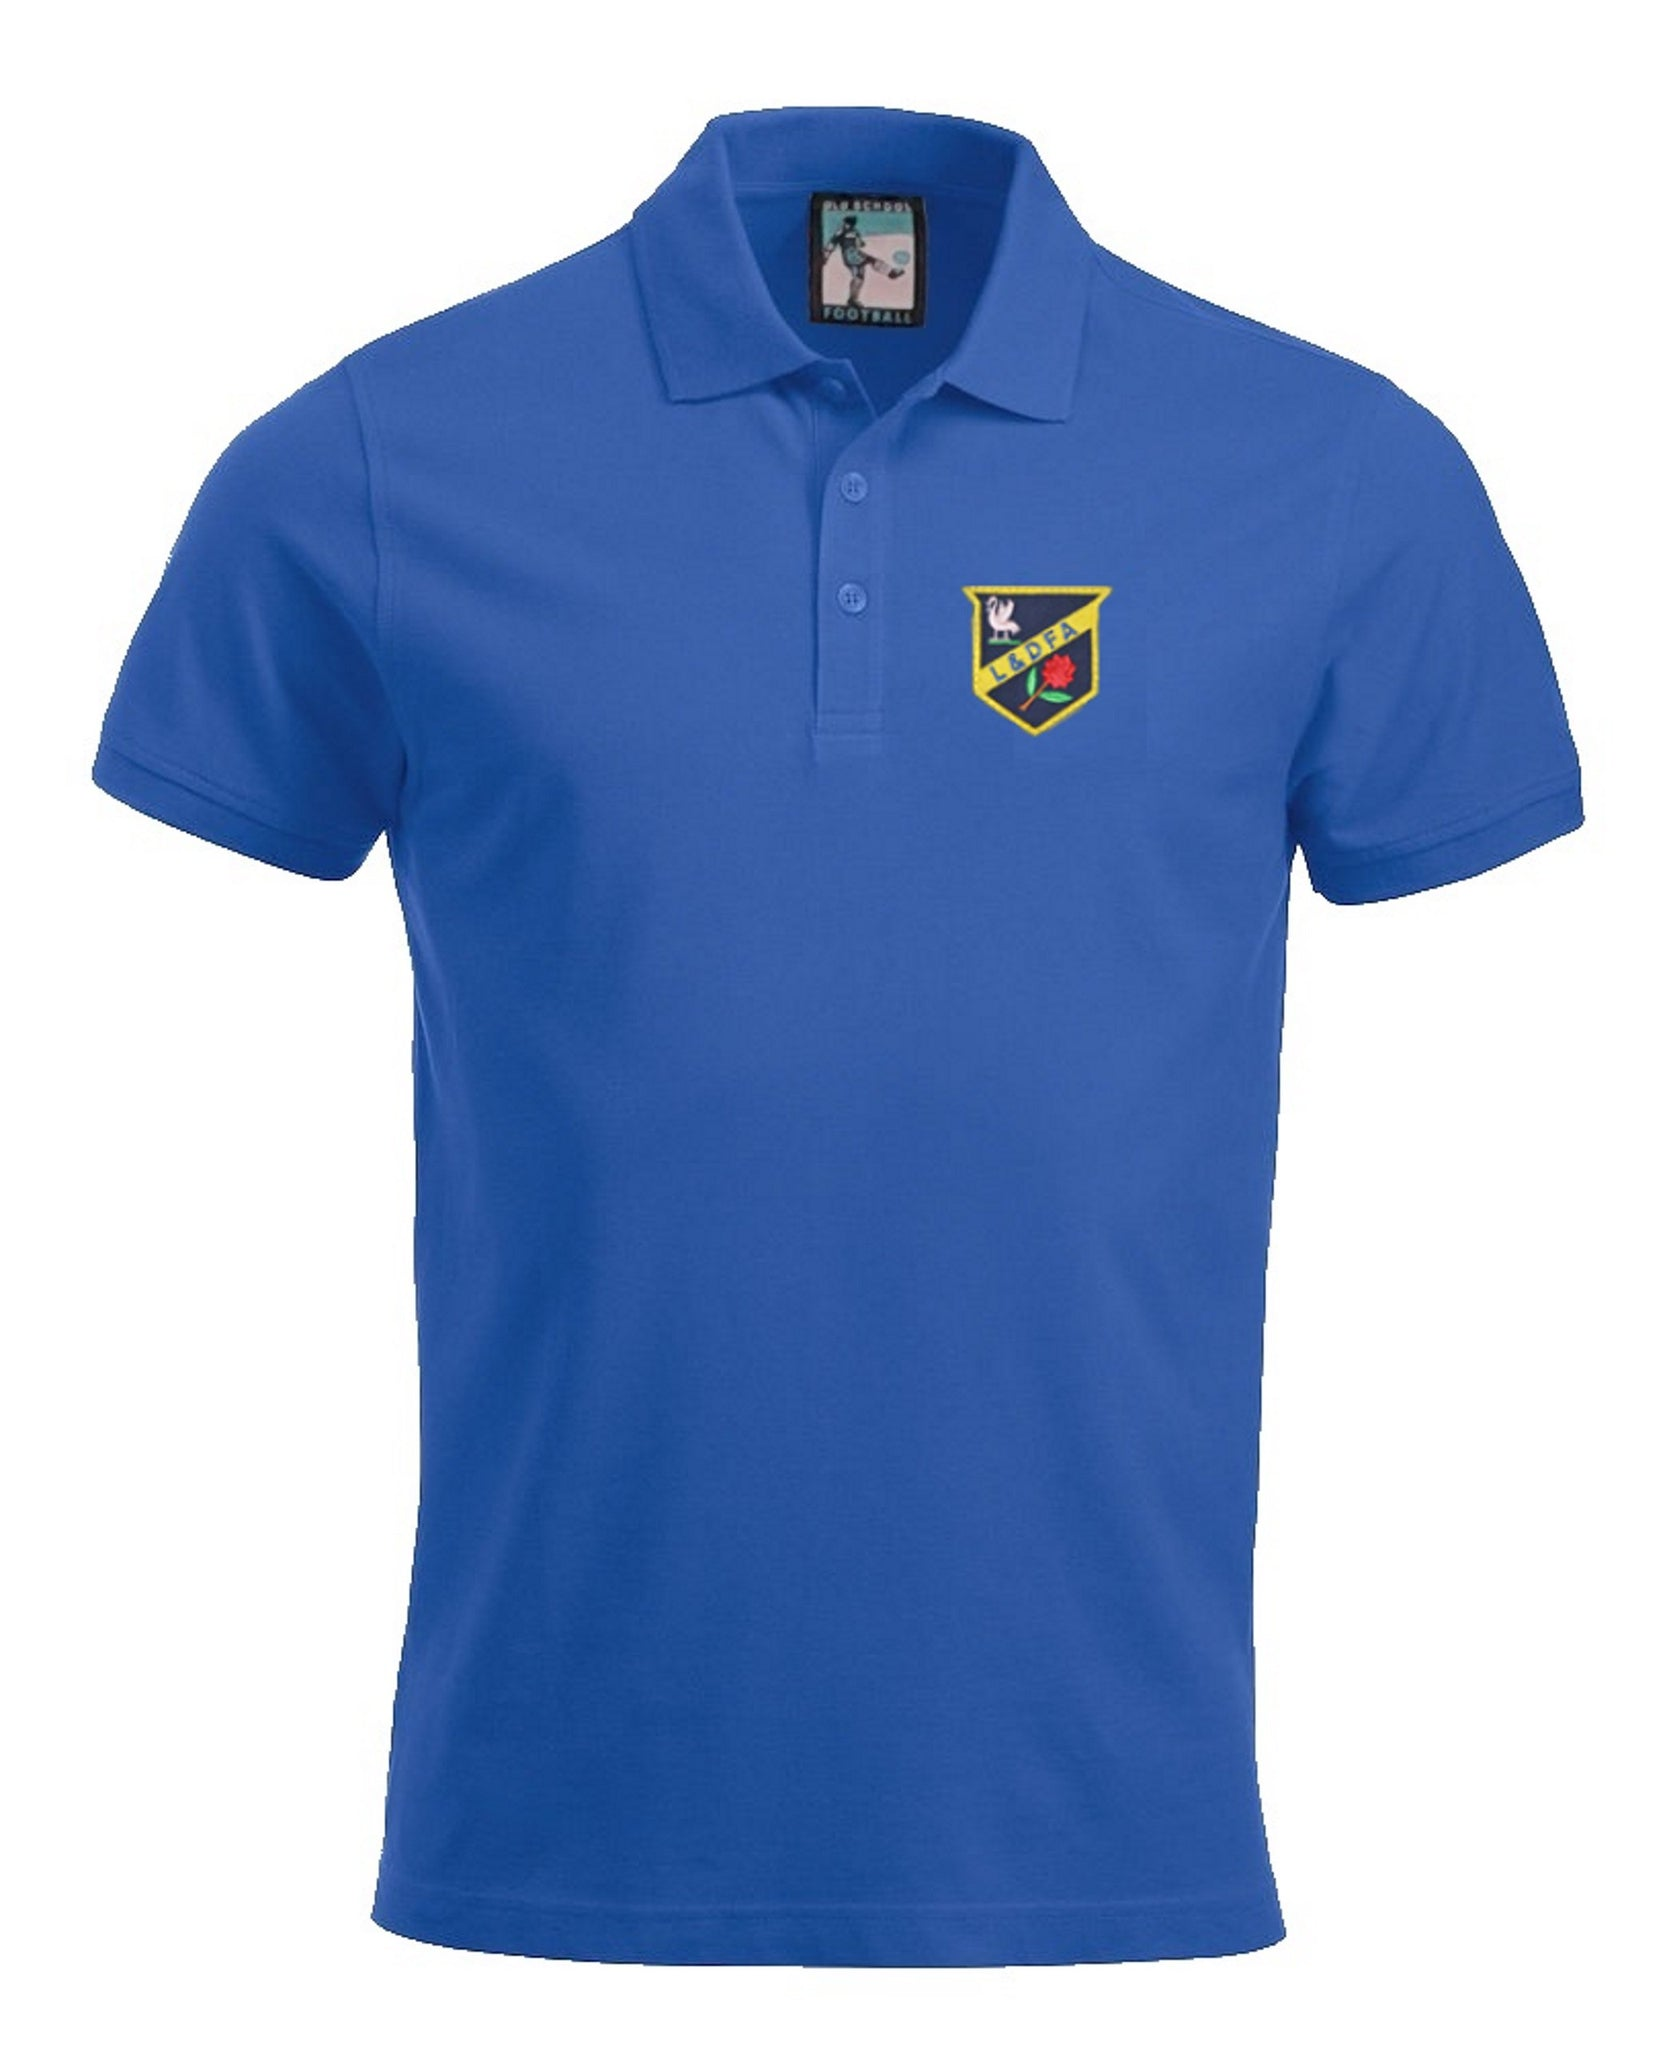 Everton Retro Football Polo Shirt 1886 - Polo